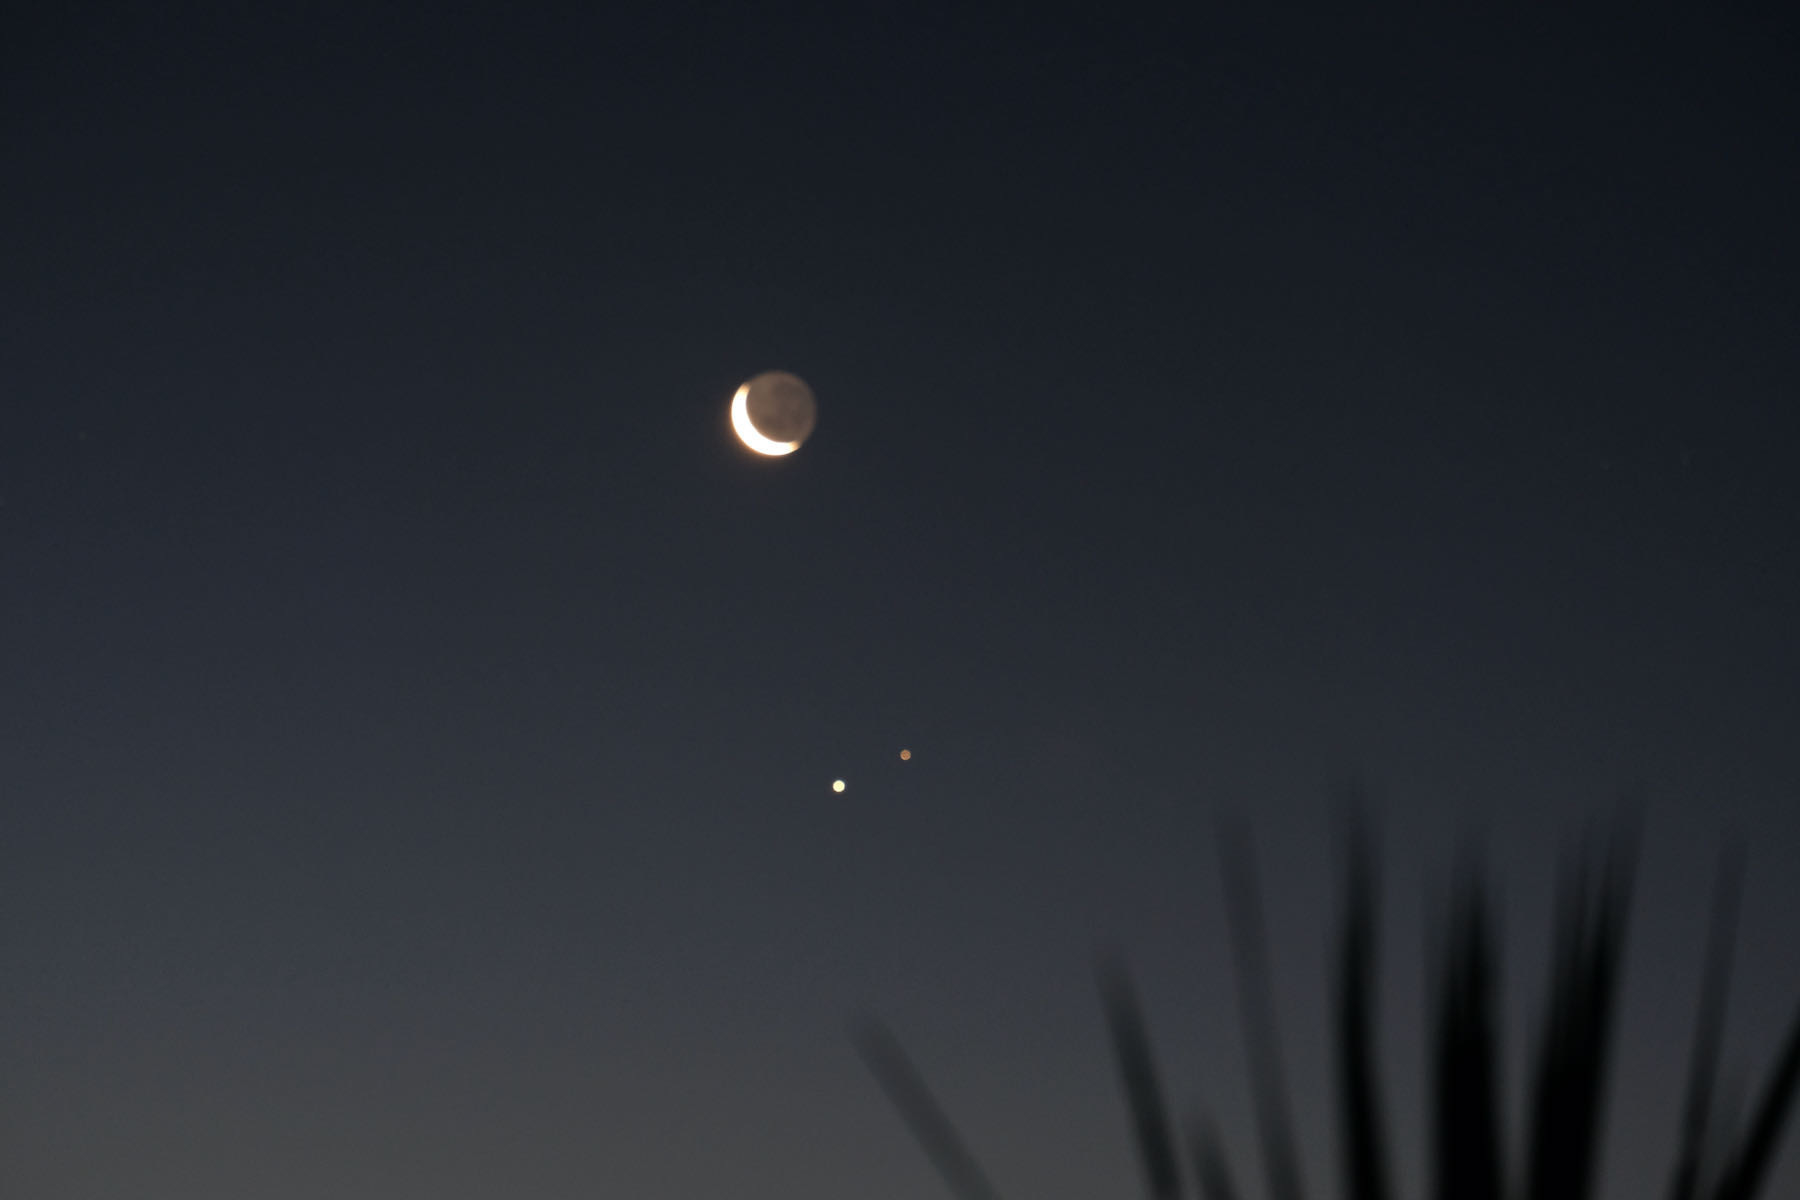 Crescent moon and two bright 'stars'.